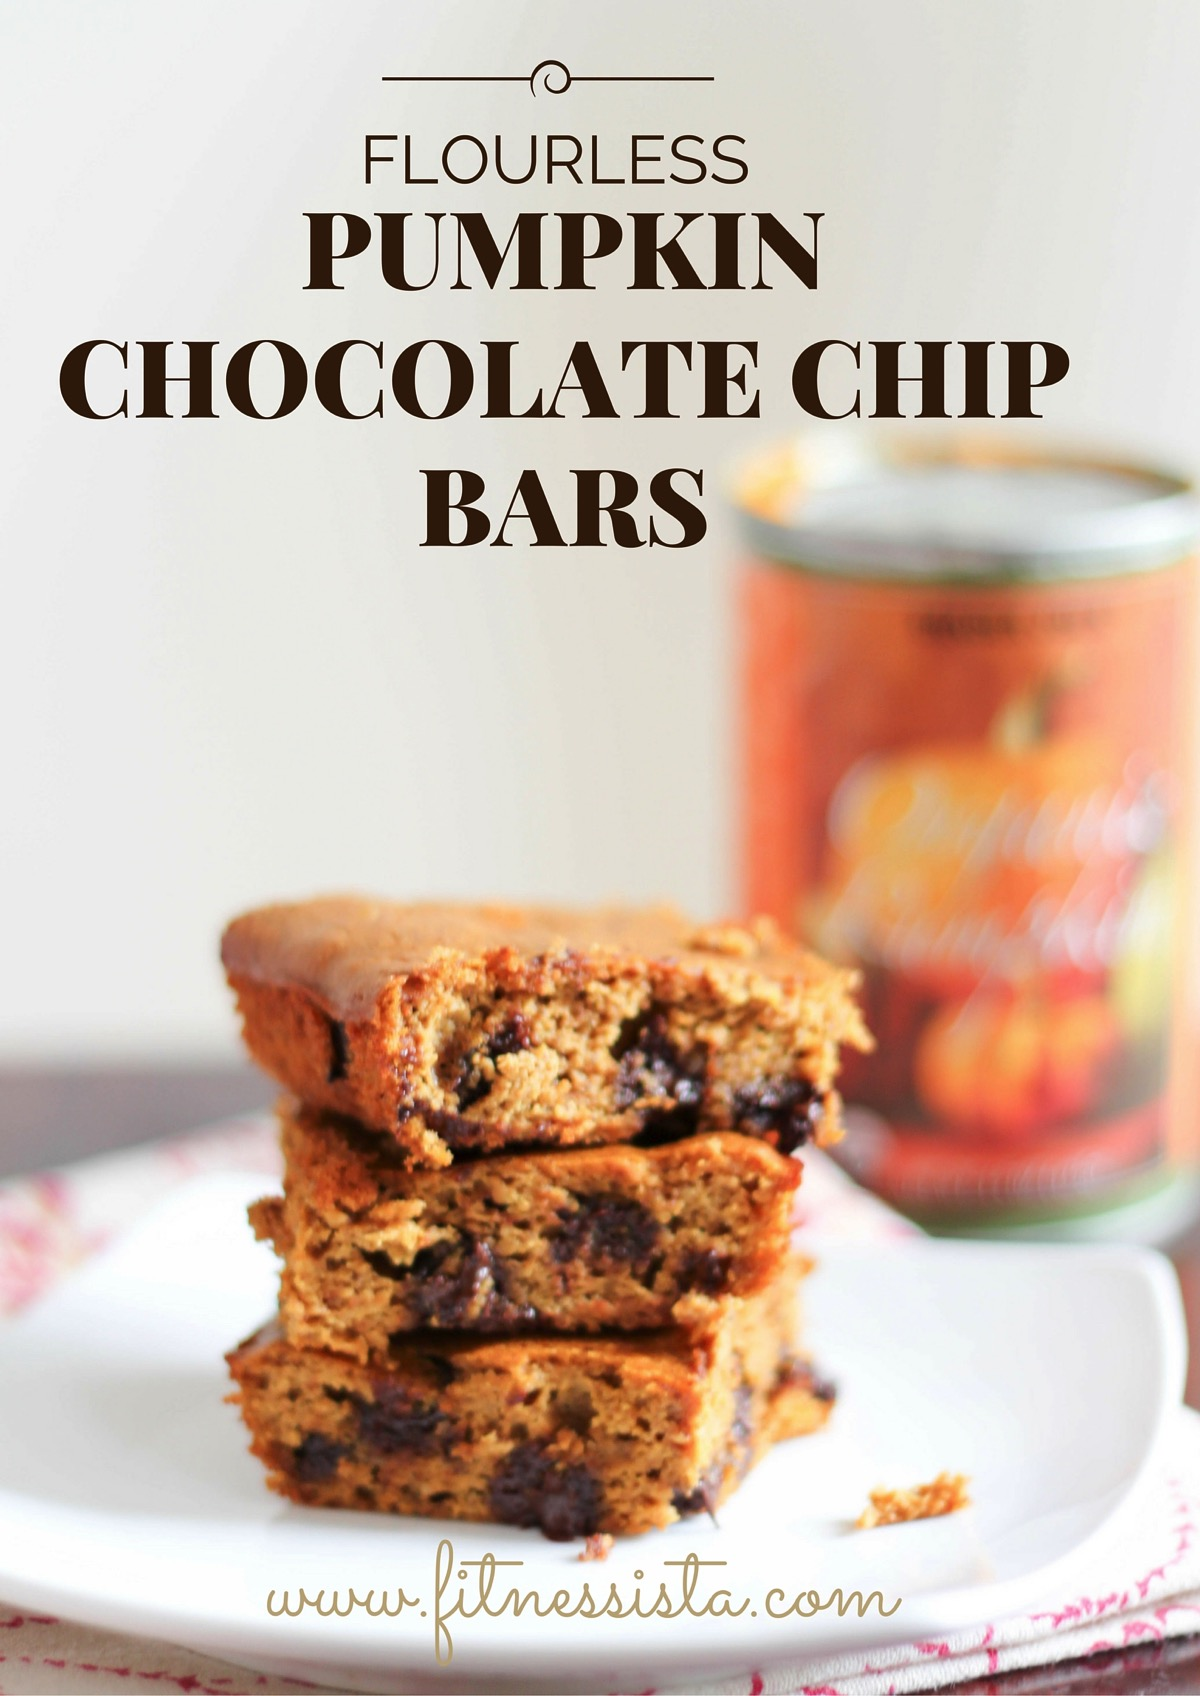 Flourless pumpkin chocolate chip bars are a fall treat packed with ...